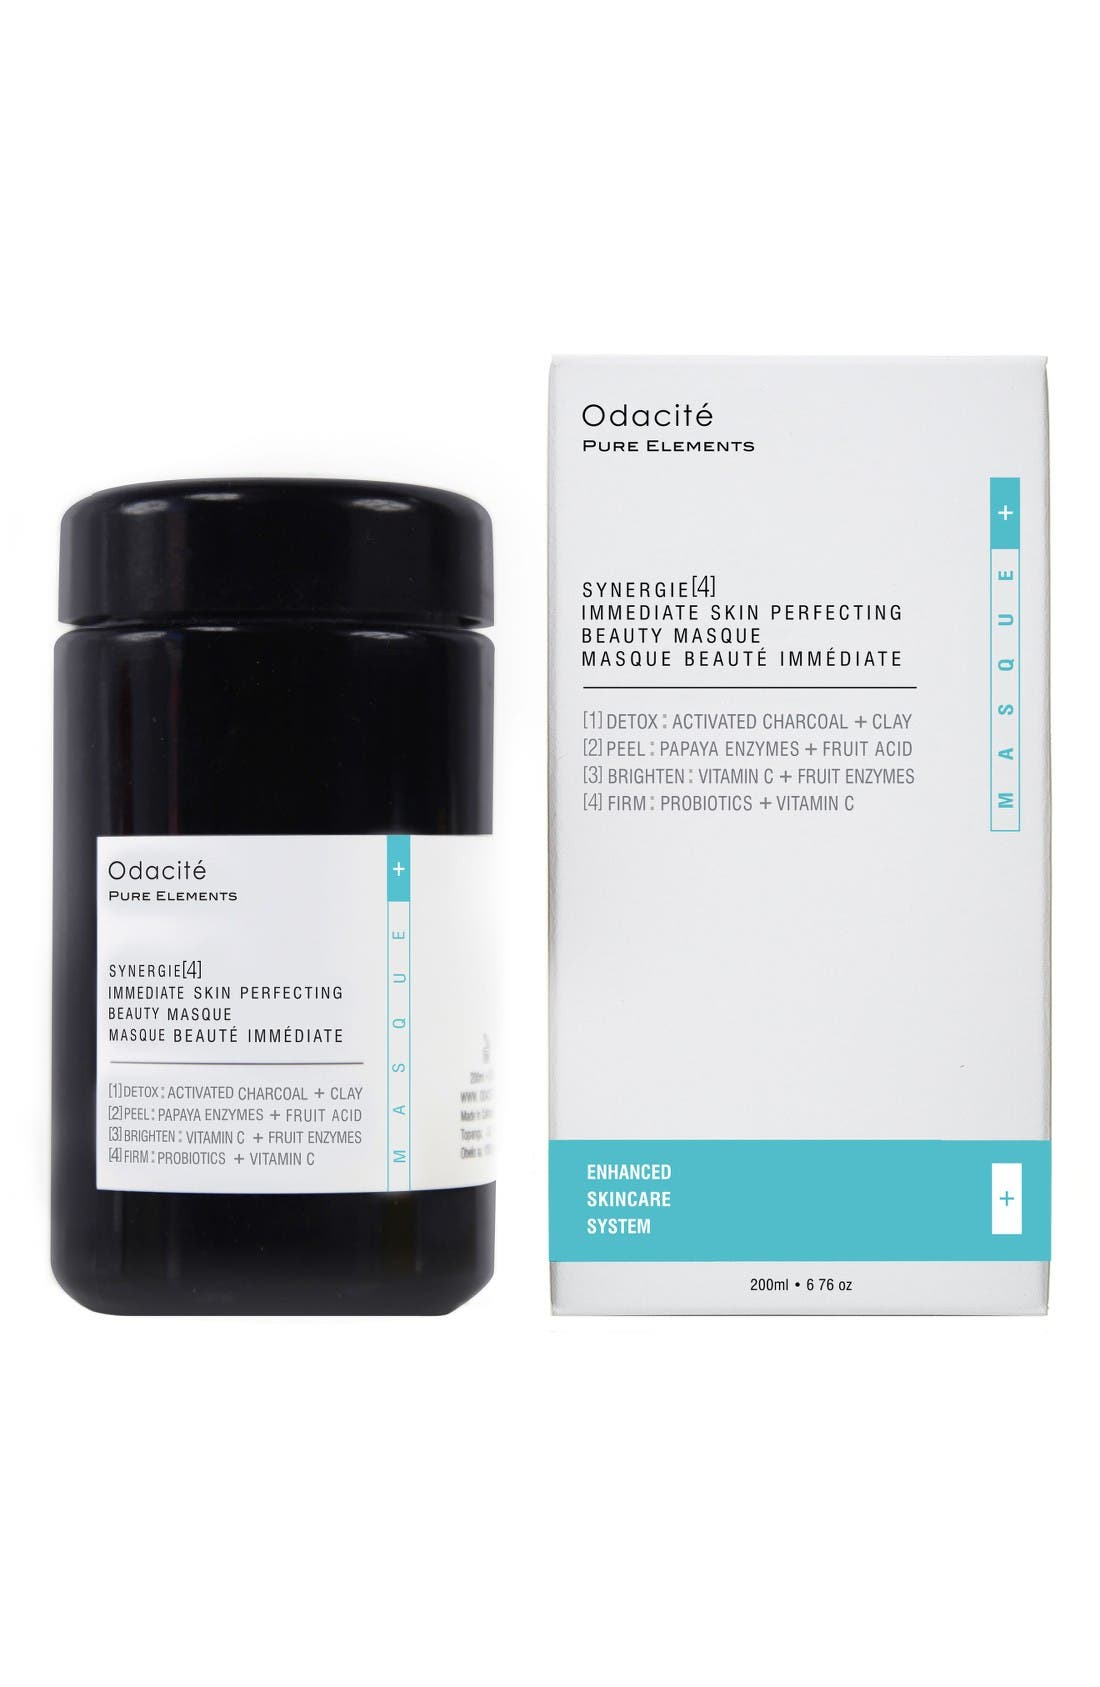 Alternate Image 1 Selected - Odacité Synergie[4] Immediate Skin Perfecting Beauty Masque